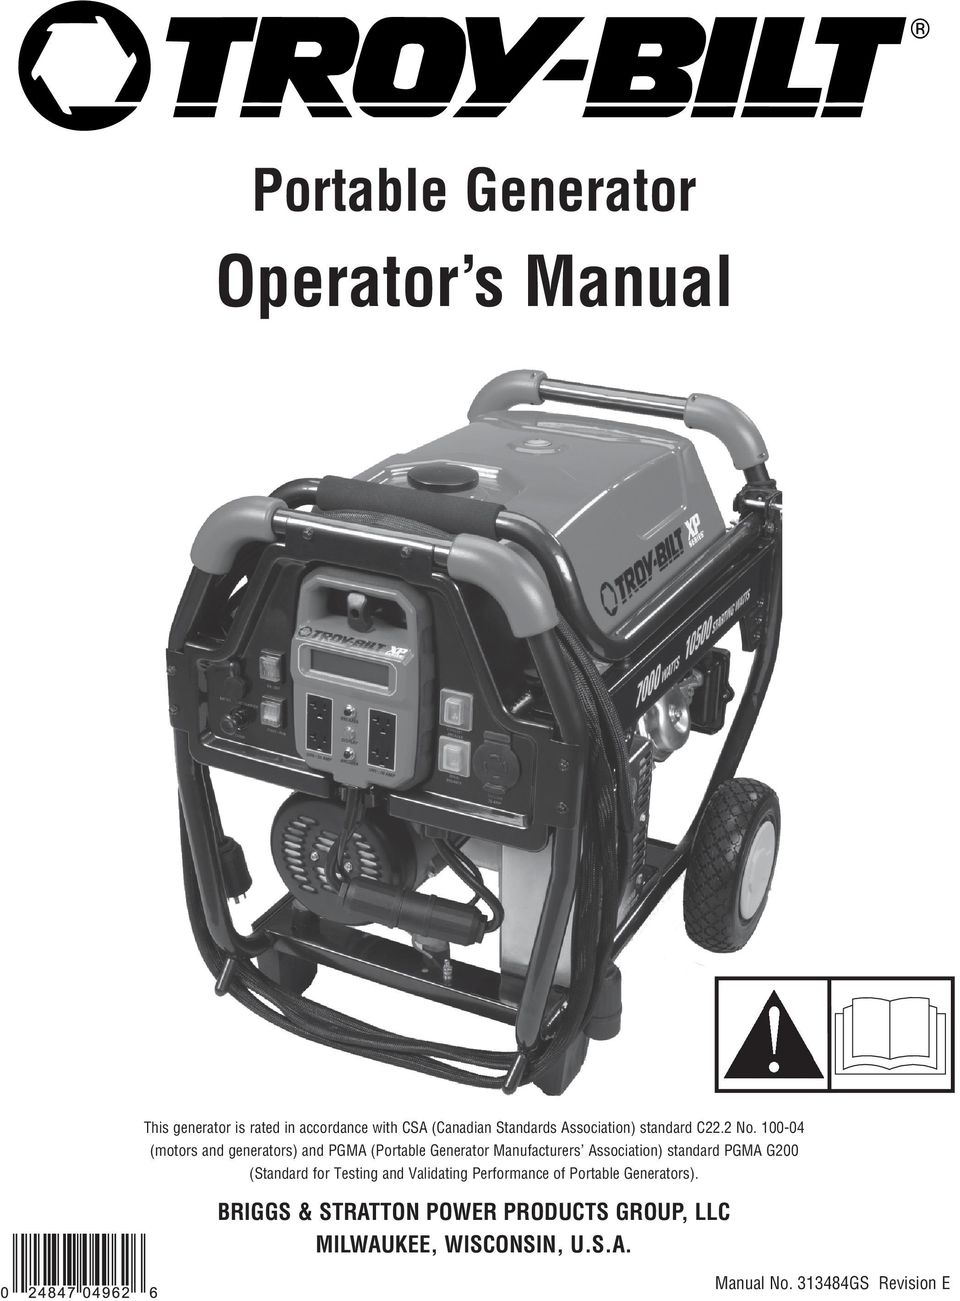 100-04 (motors and generators) and PGMA (Portable Generator Manufacturers Association) standard PGMA